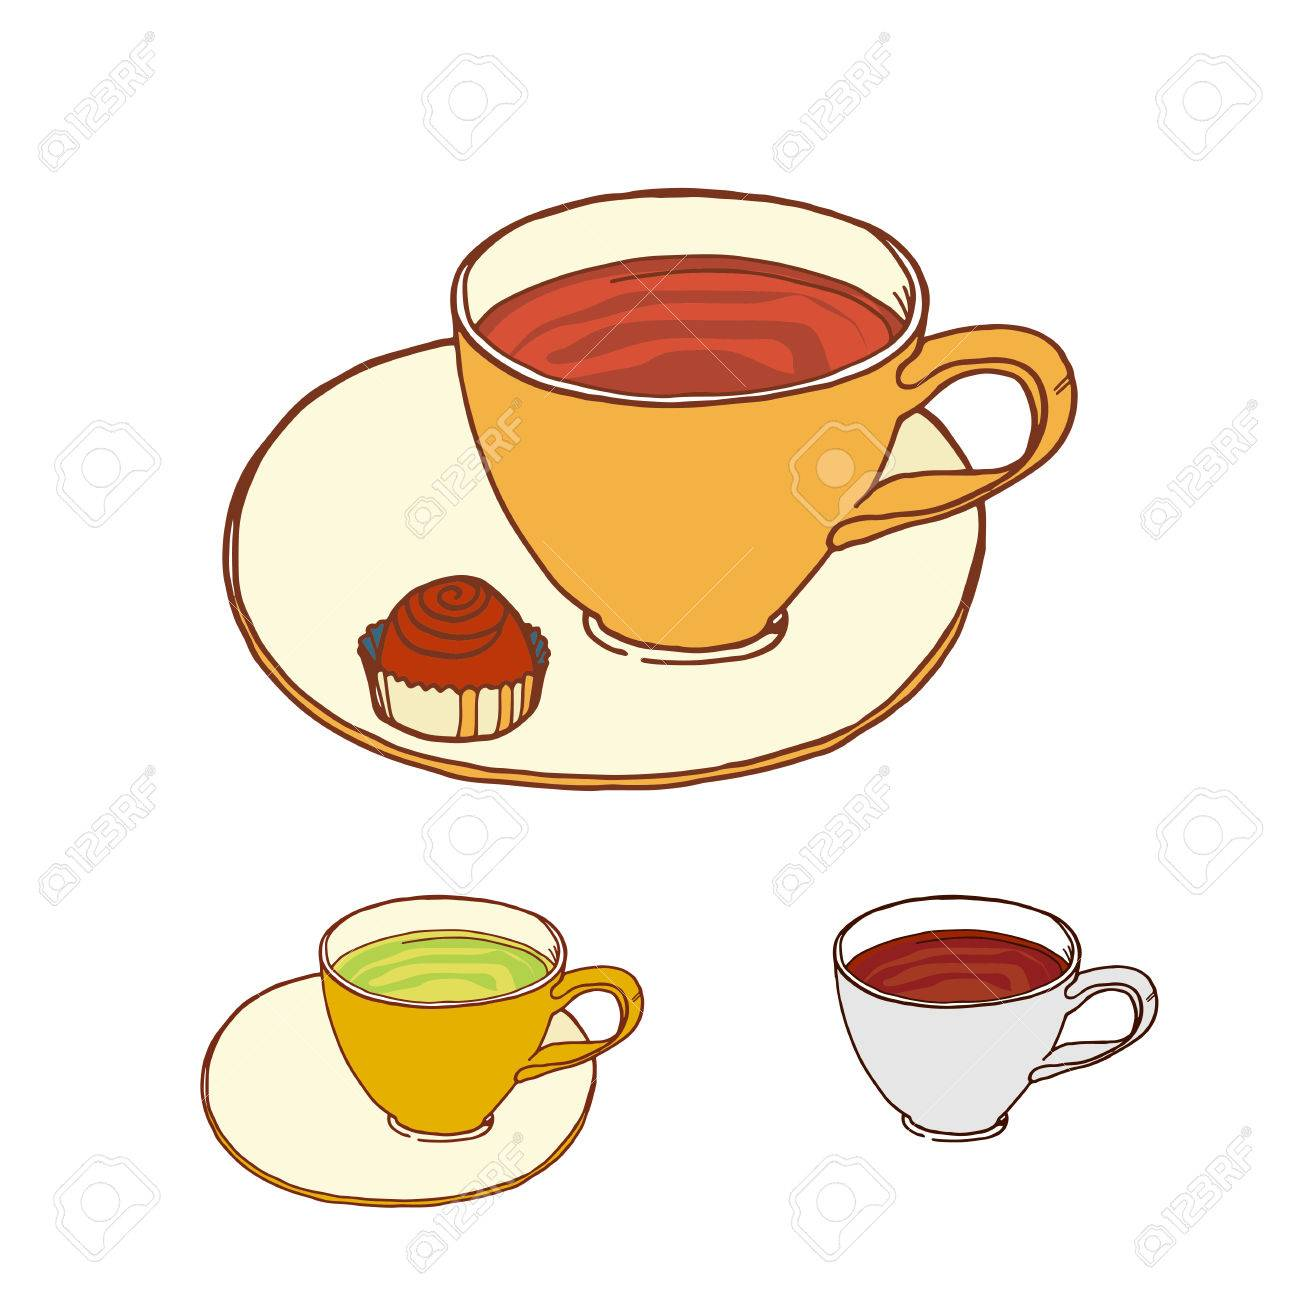 1300x1300 Coffee And Tea Cup With Candy At Saucer Vector Sketch. Color